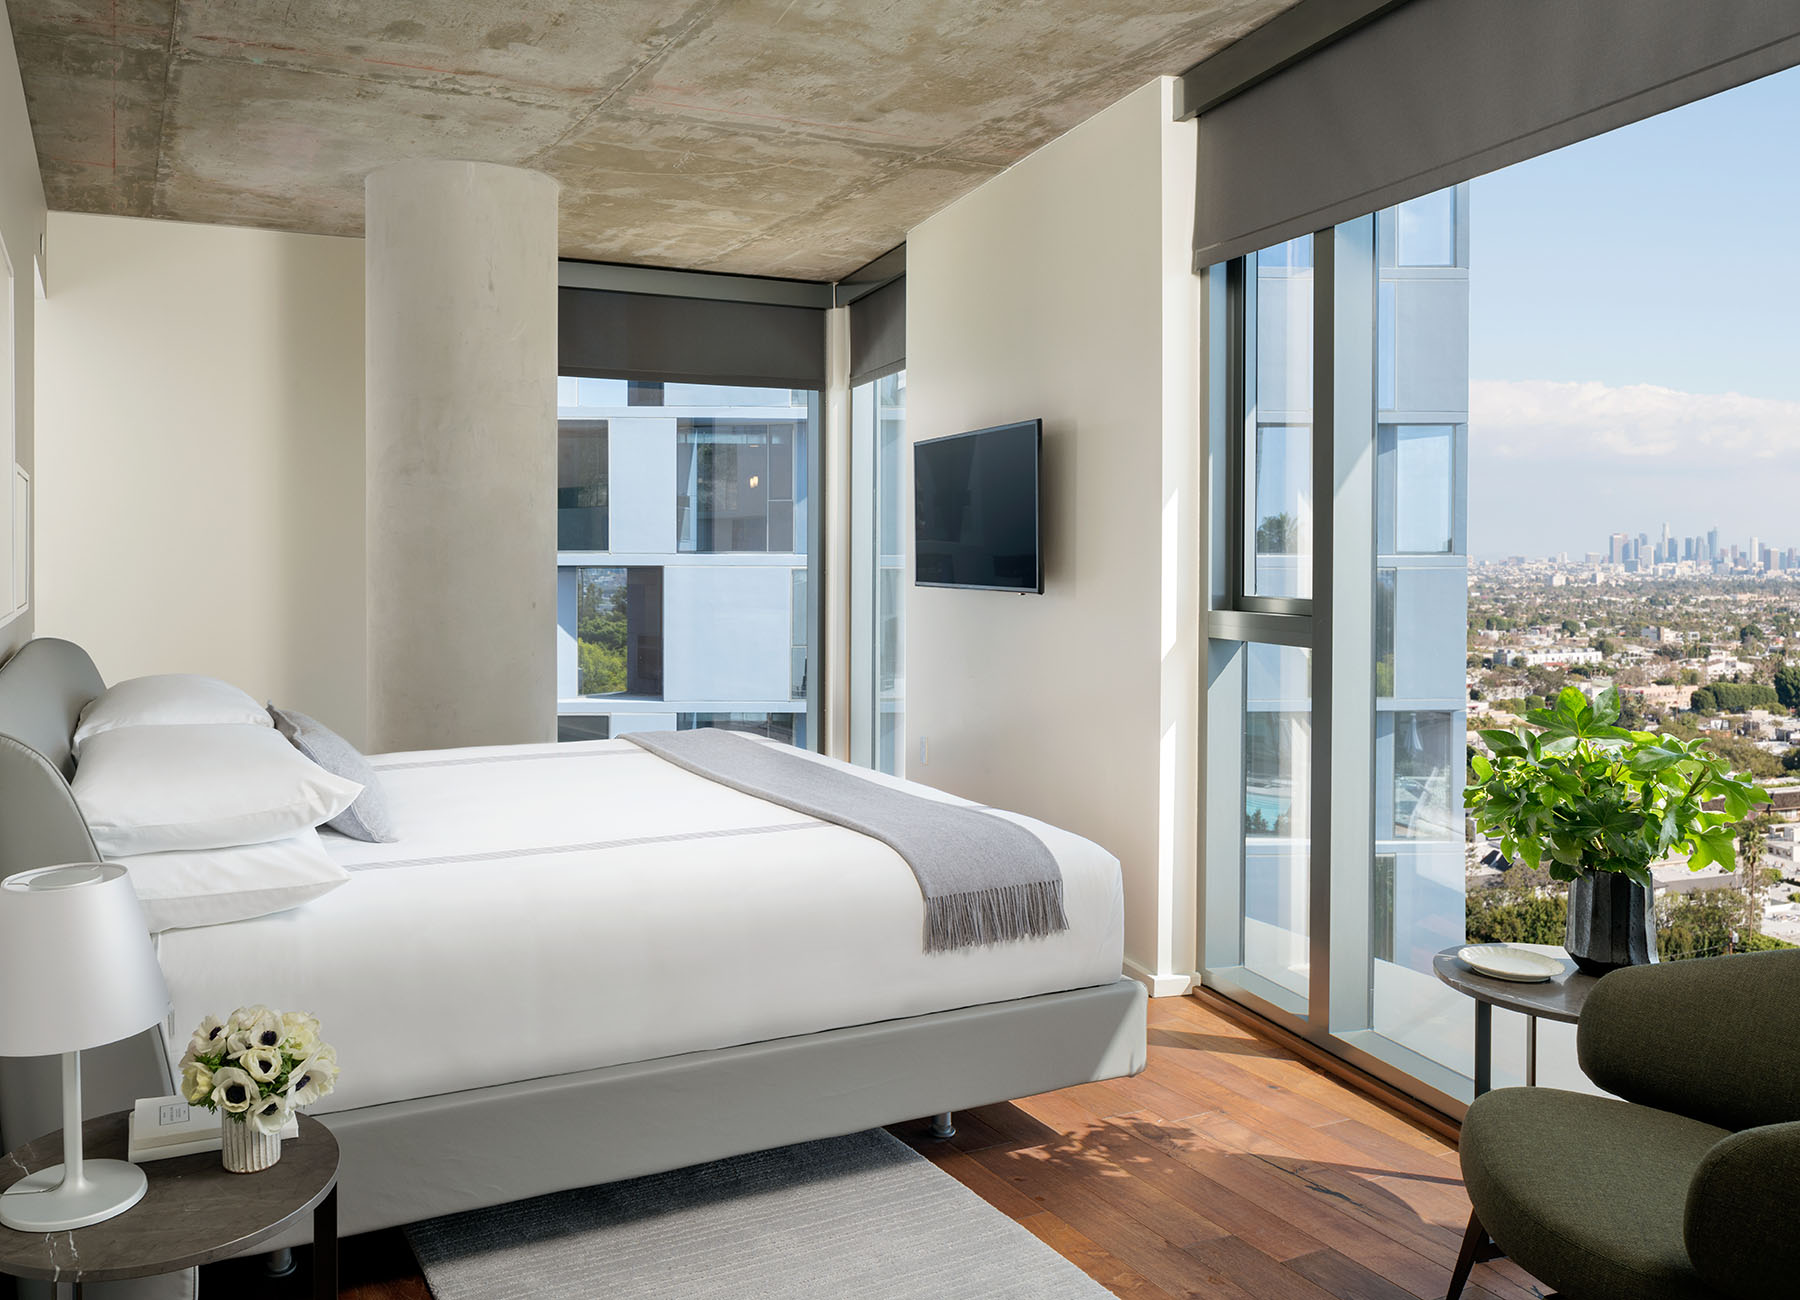 Bedroom with concrete ceiling and king bed looking over large window to West Hollywood